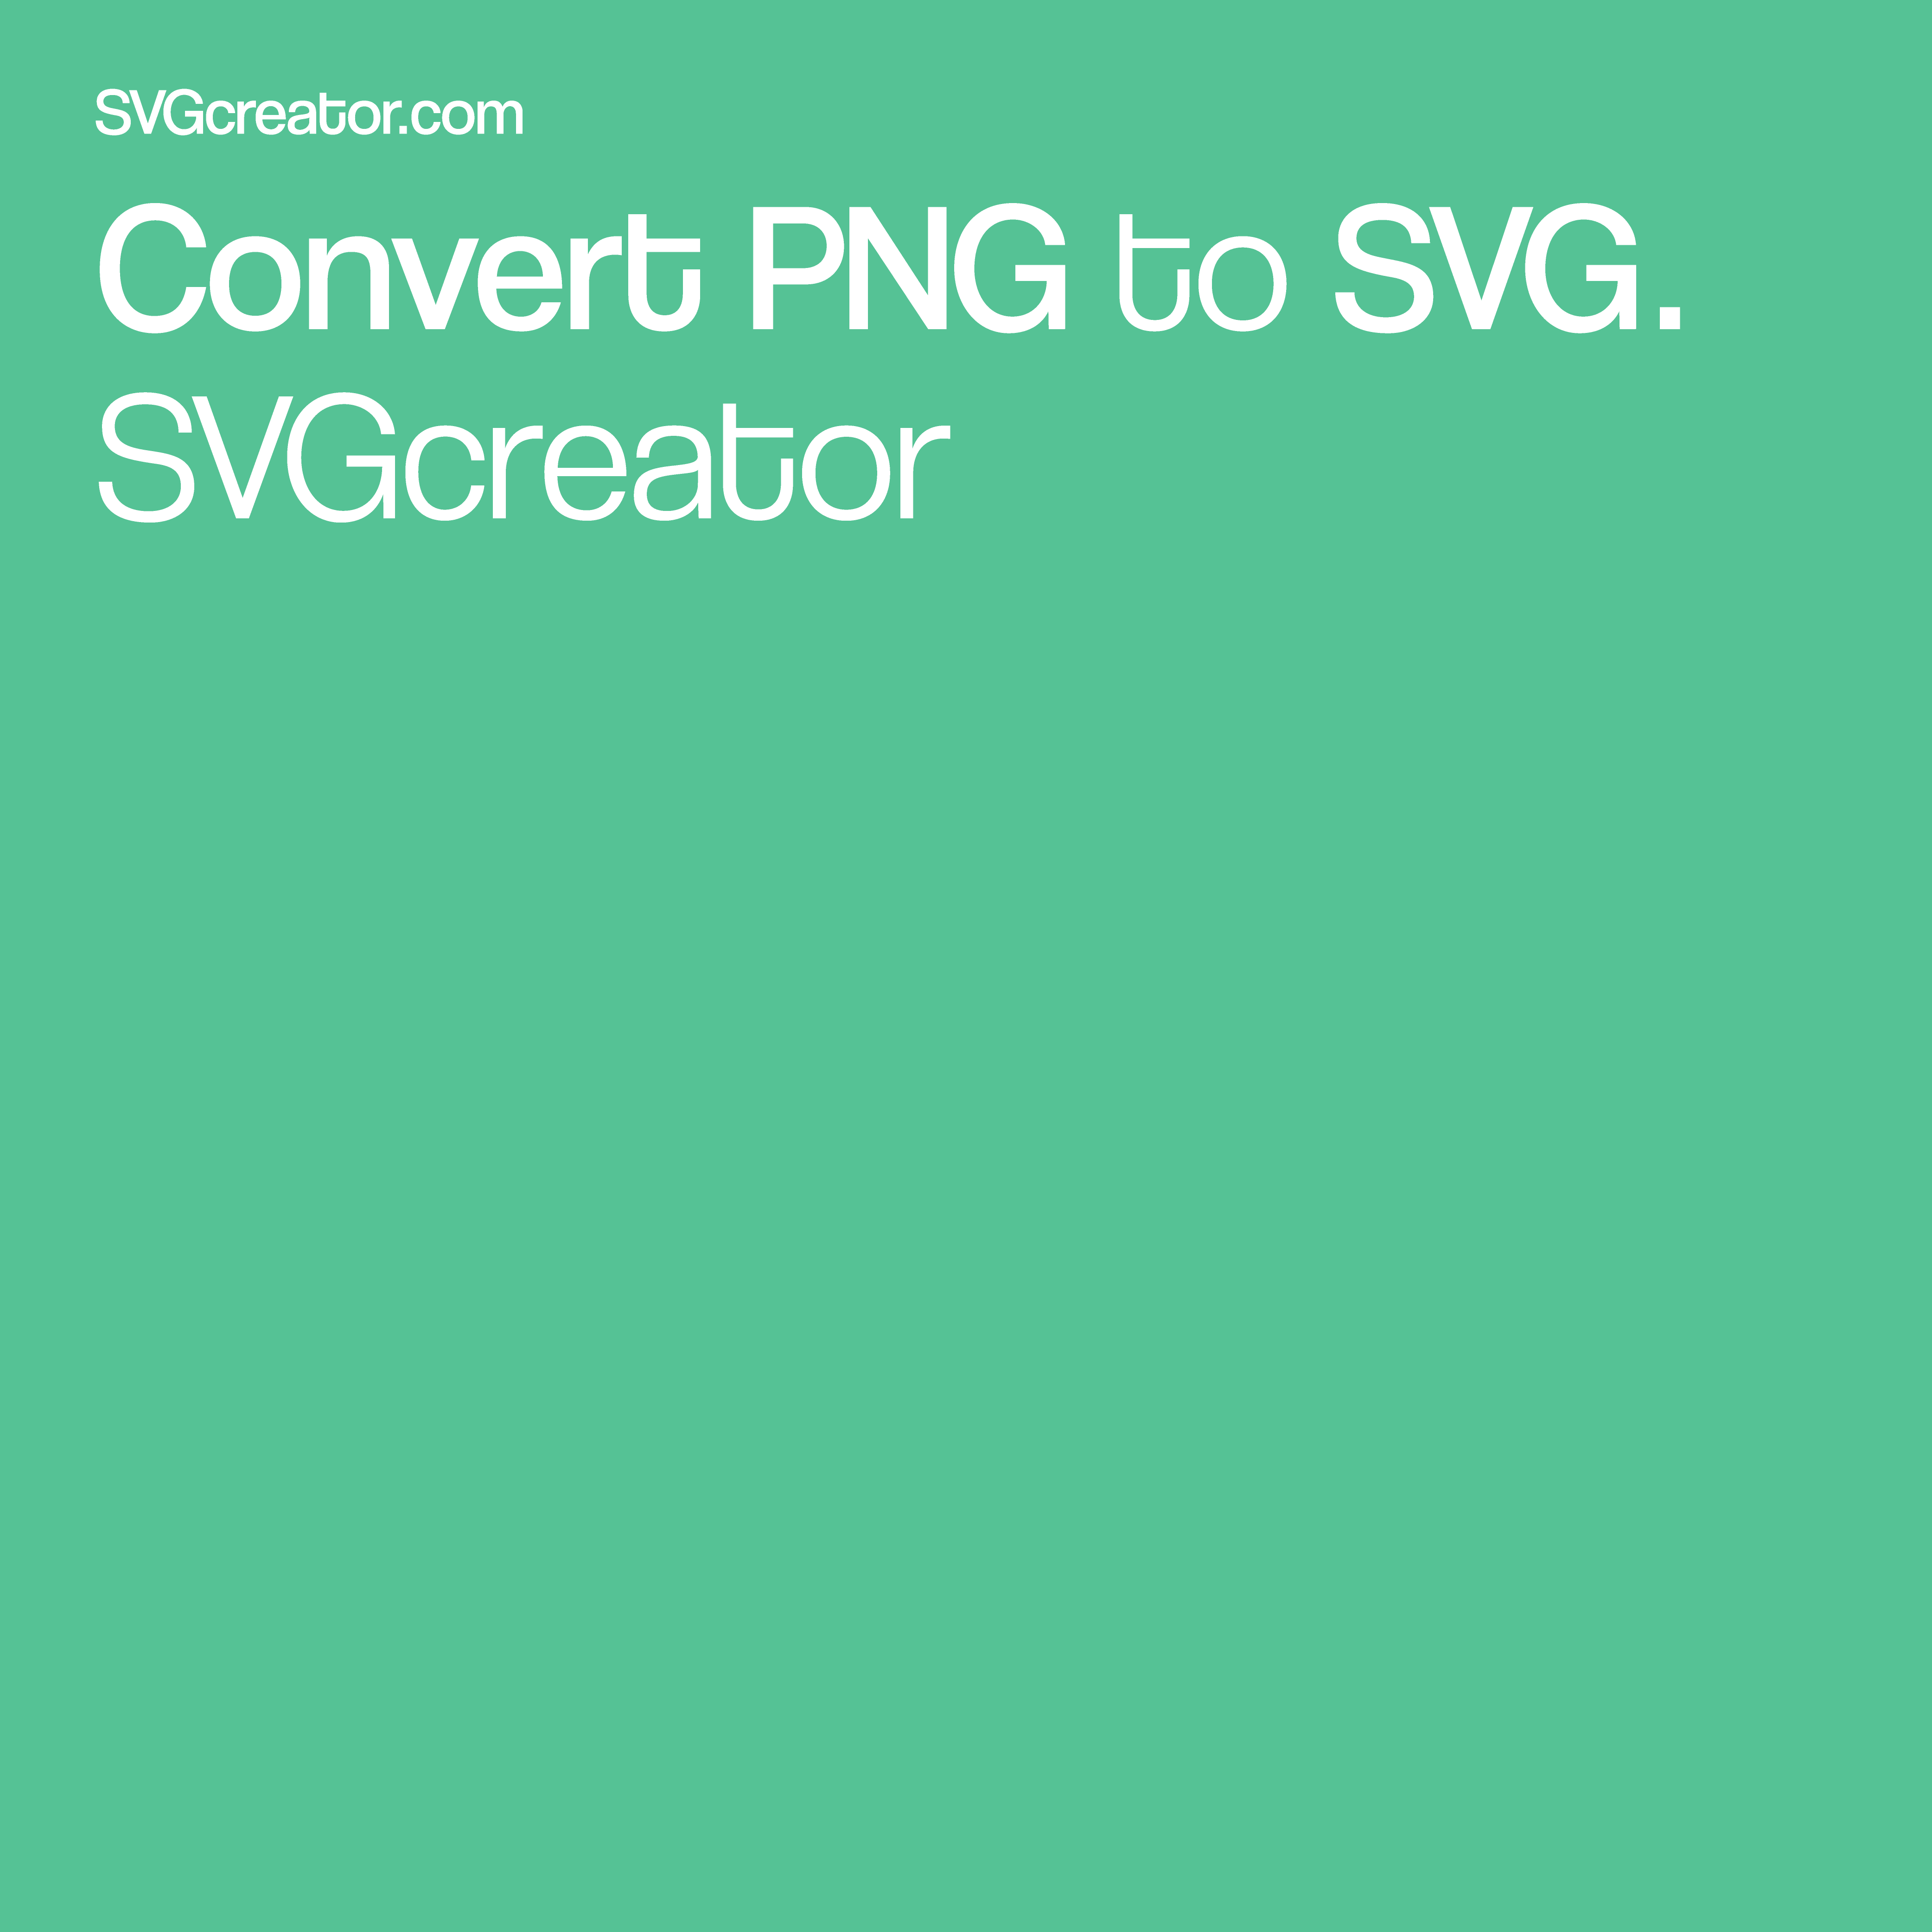 Easily convert your PNG to SVG format in one click using